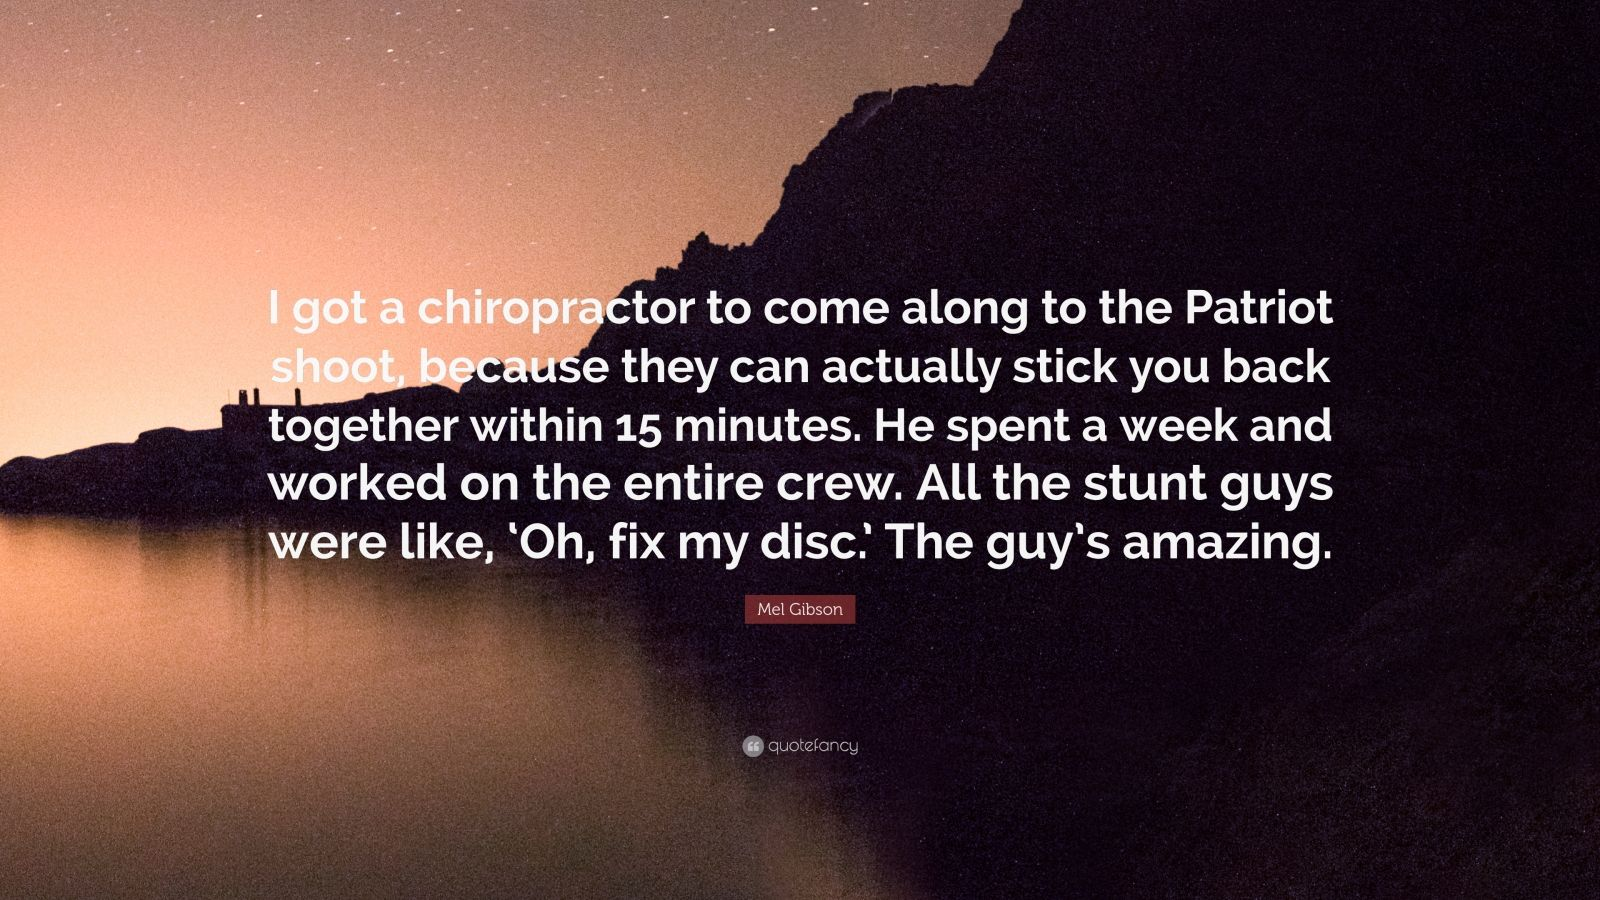 """Mel Gibson Quote: """"I got a chiropractor to come along to the Patriot shoot, because they can actually stick you back together within 15 minutes. He spent a week and worked on the entire crew. All the stunt guys were like, 'Oh, fix my disc.' The guy's amazing."""""""